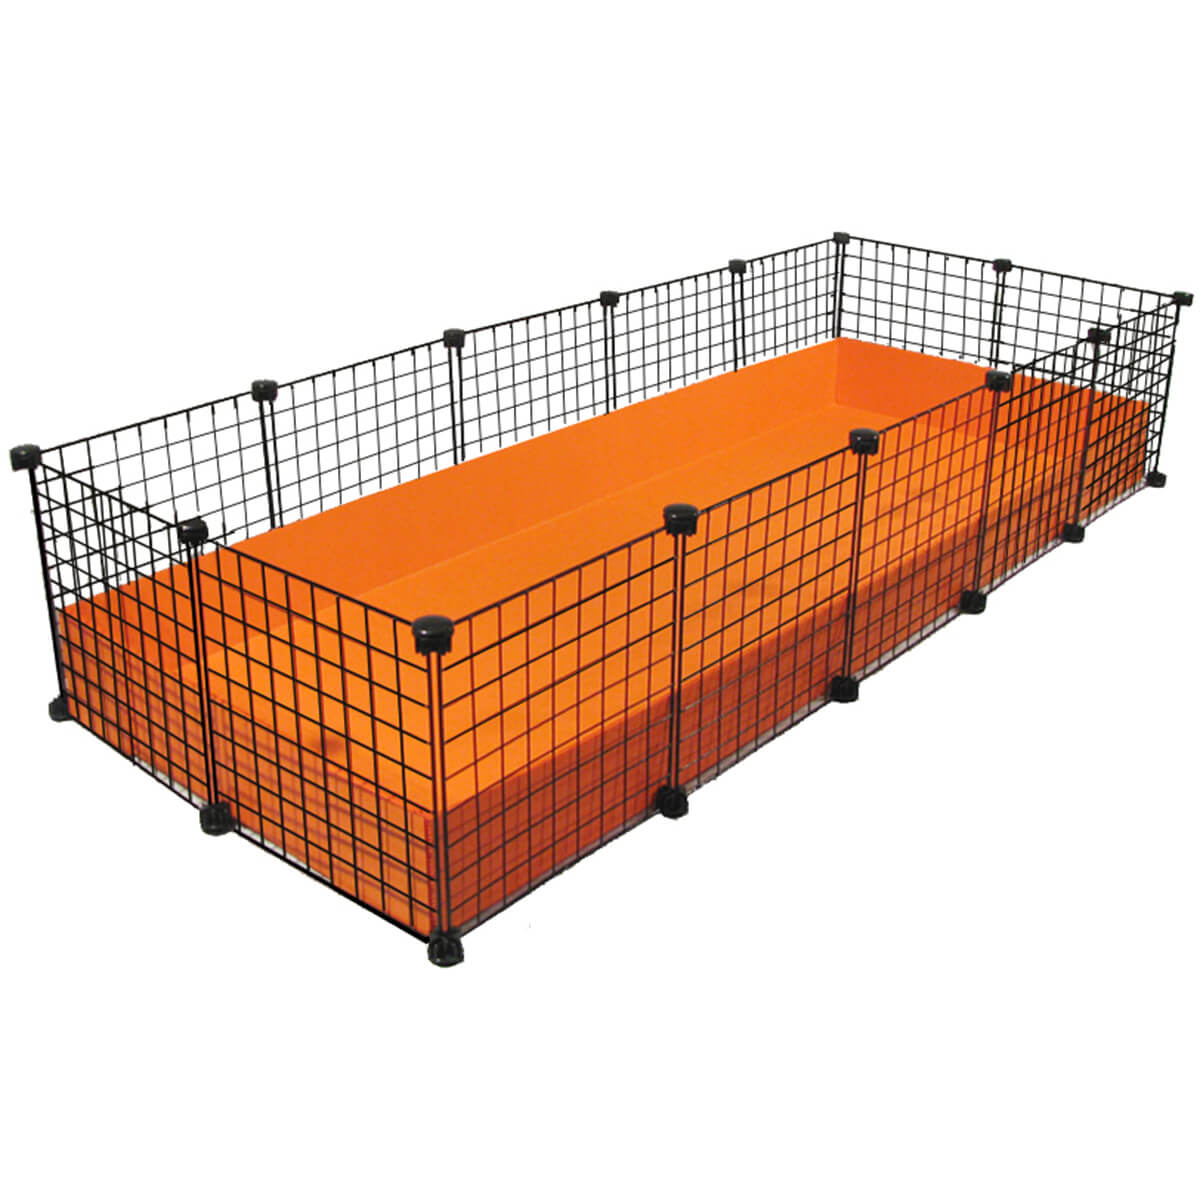 Xl 2x5 grids cage standard cages c c cages for for Coroplast guinea pig cage for sale